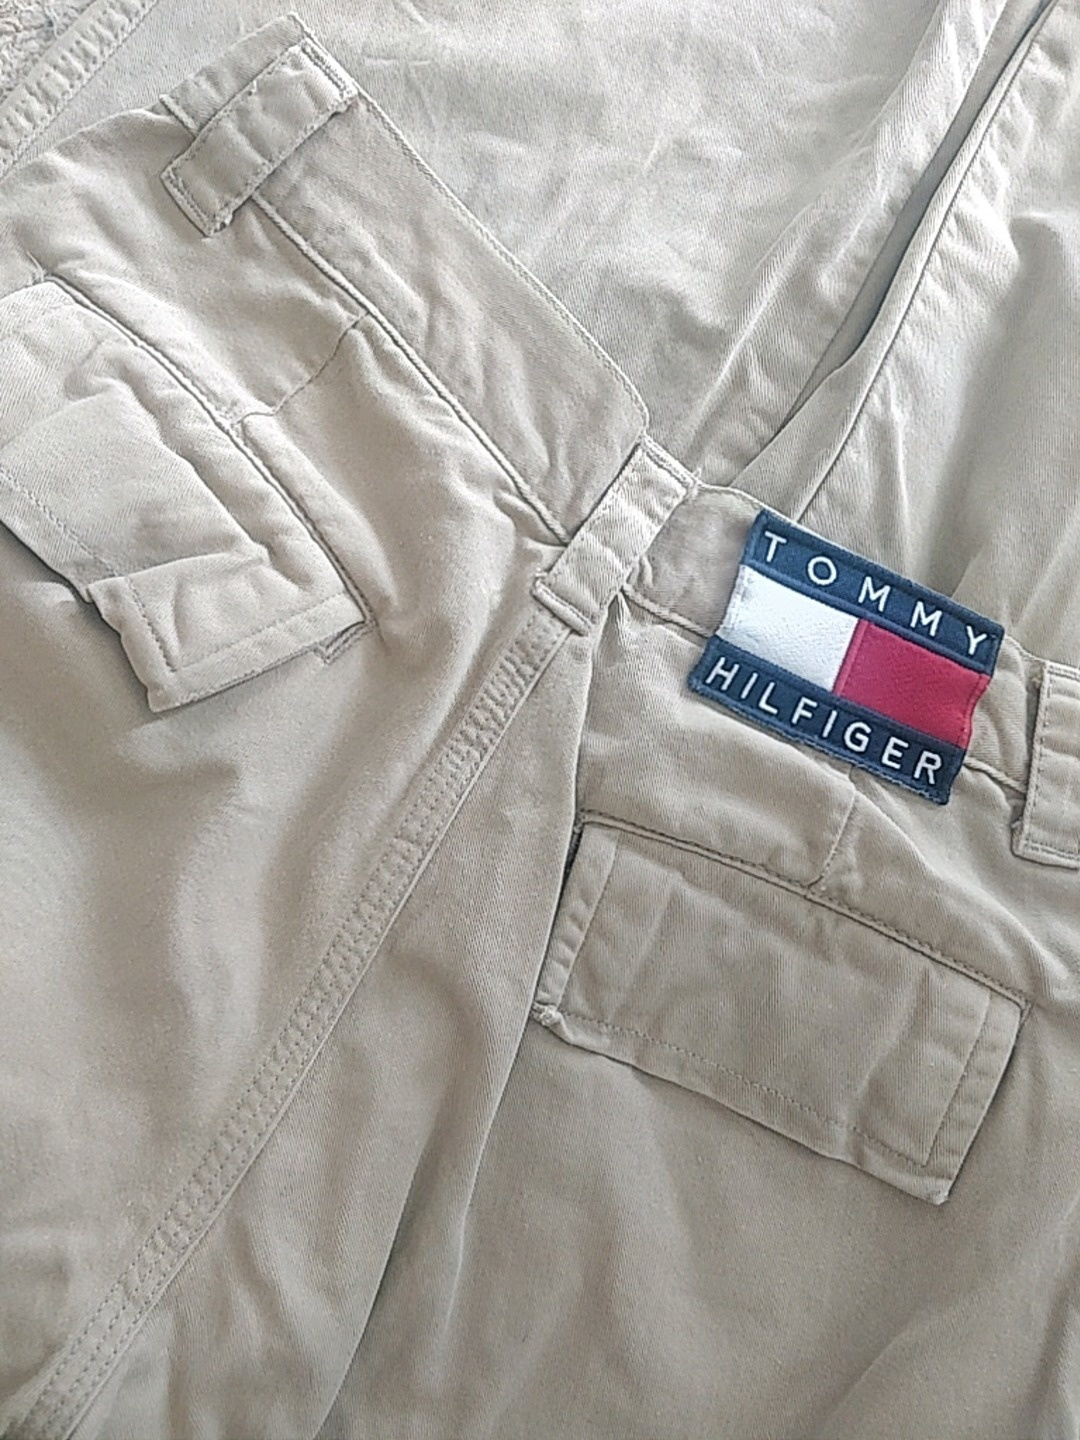 Women's trousers & jeans - TOMMY HILFIGER photo 4